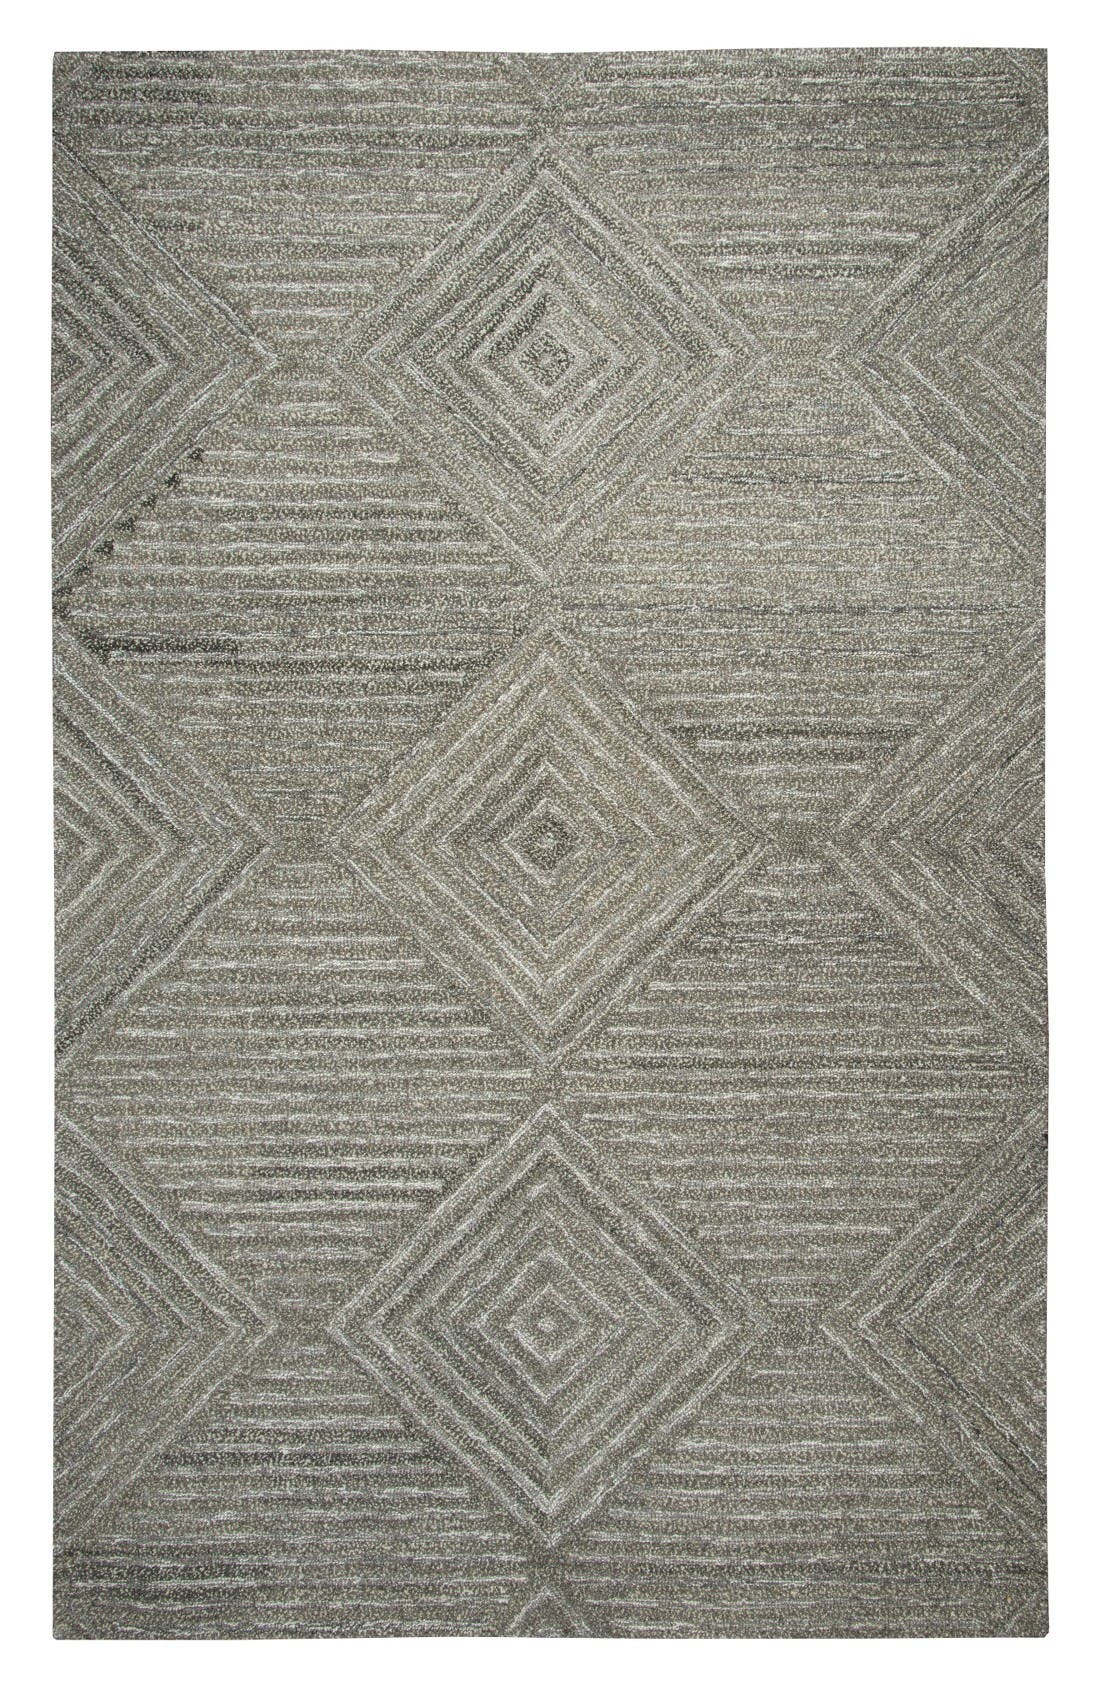 Rizzy Home Serenity Hand Tufted Wool Area Rug